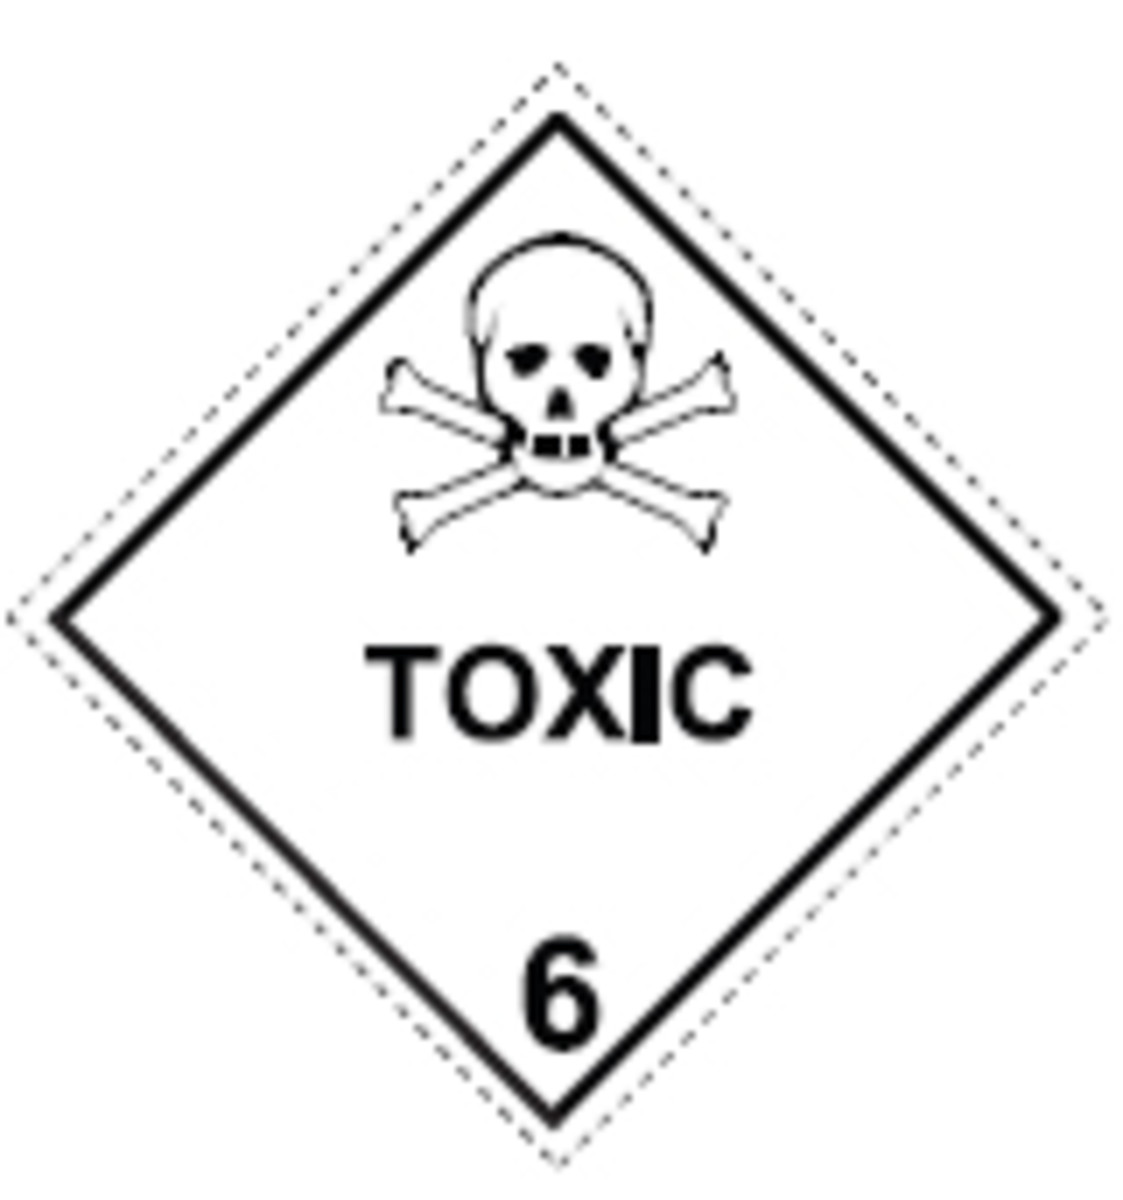 Toxic relationships can be hazardous to ones health.